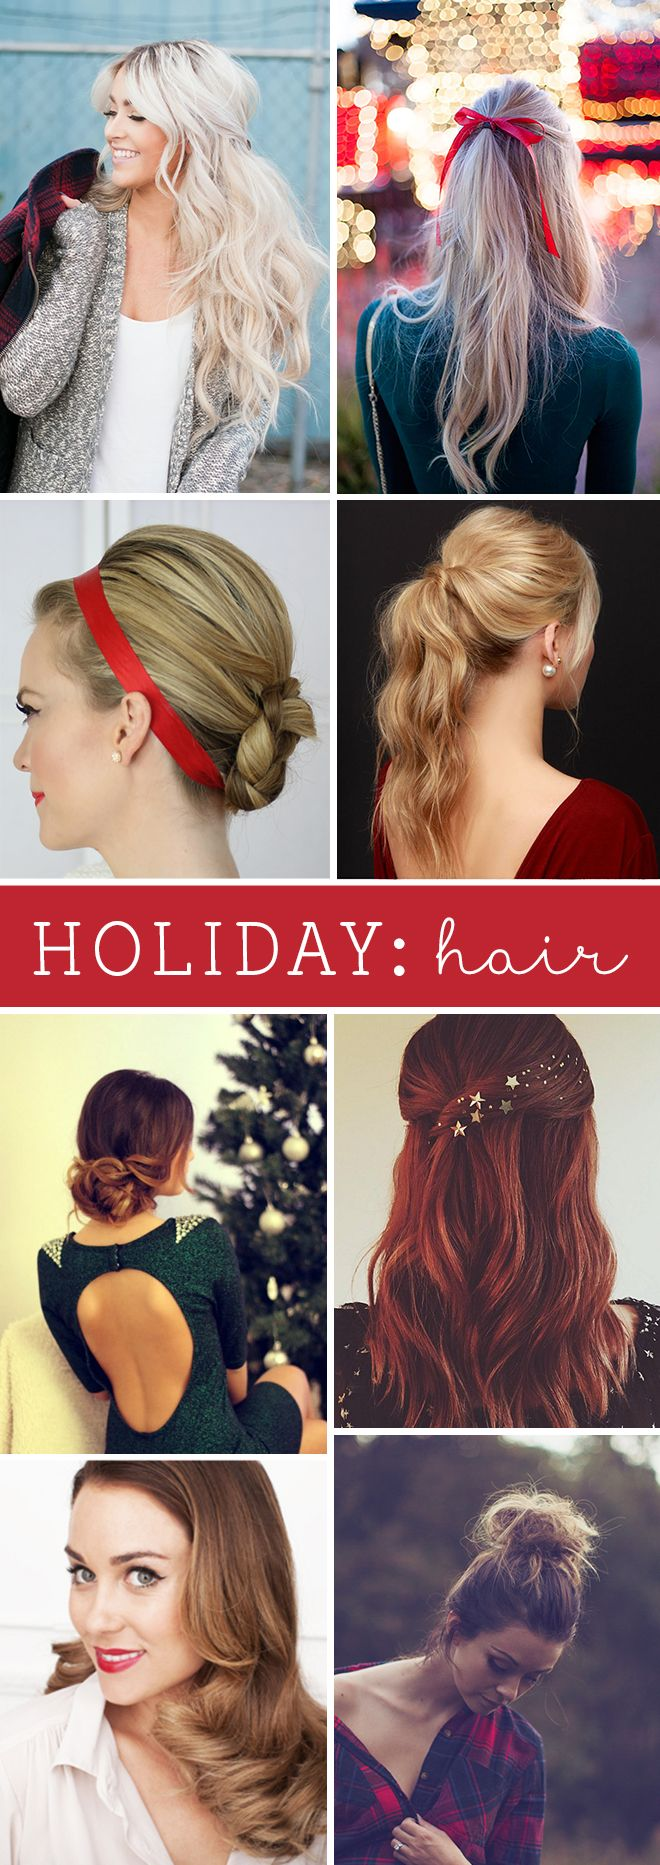 The Best Holiday Hair Tips For 2015!